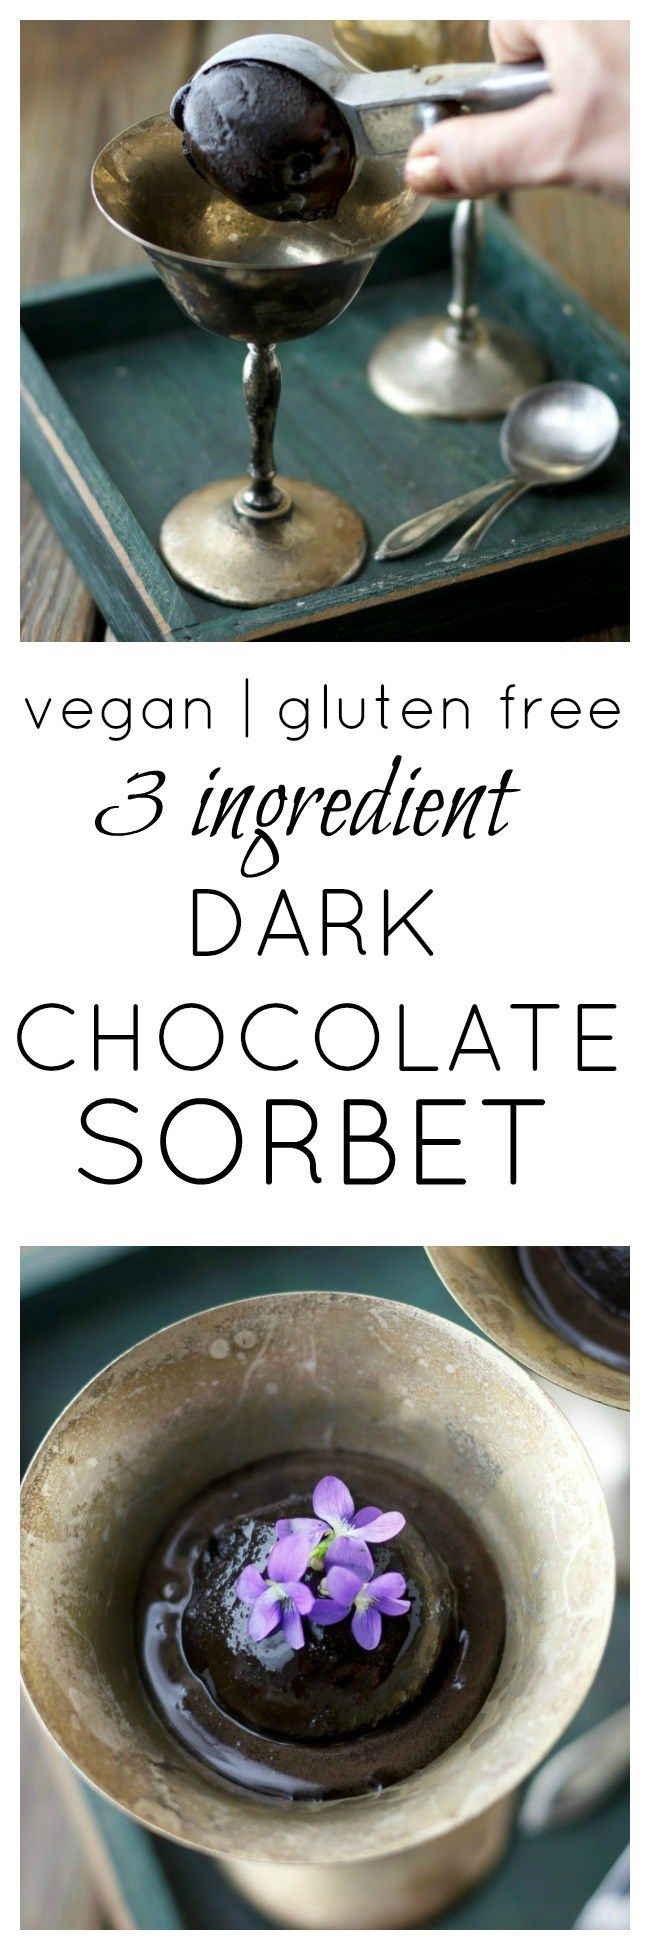 Need a last-minute Valentine's Day treat? 3 Ingredient Dark Chocolate Sorbet! Easy and delicious.